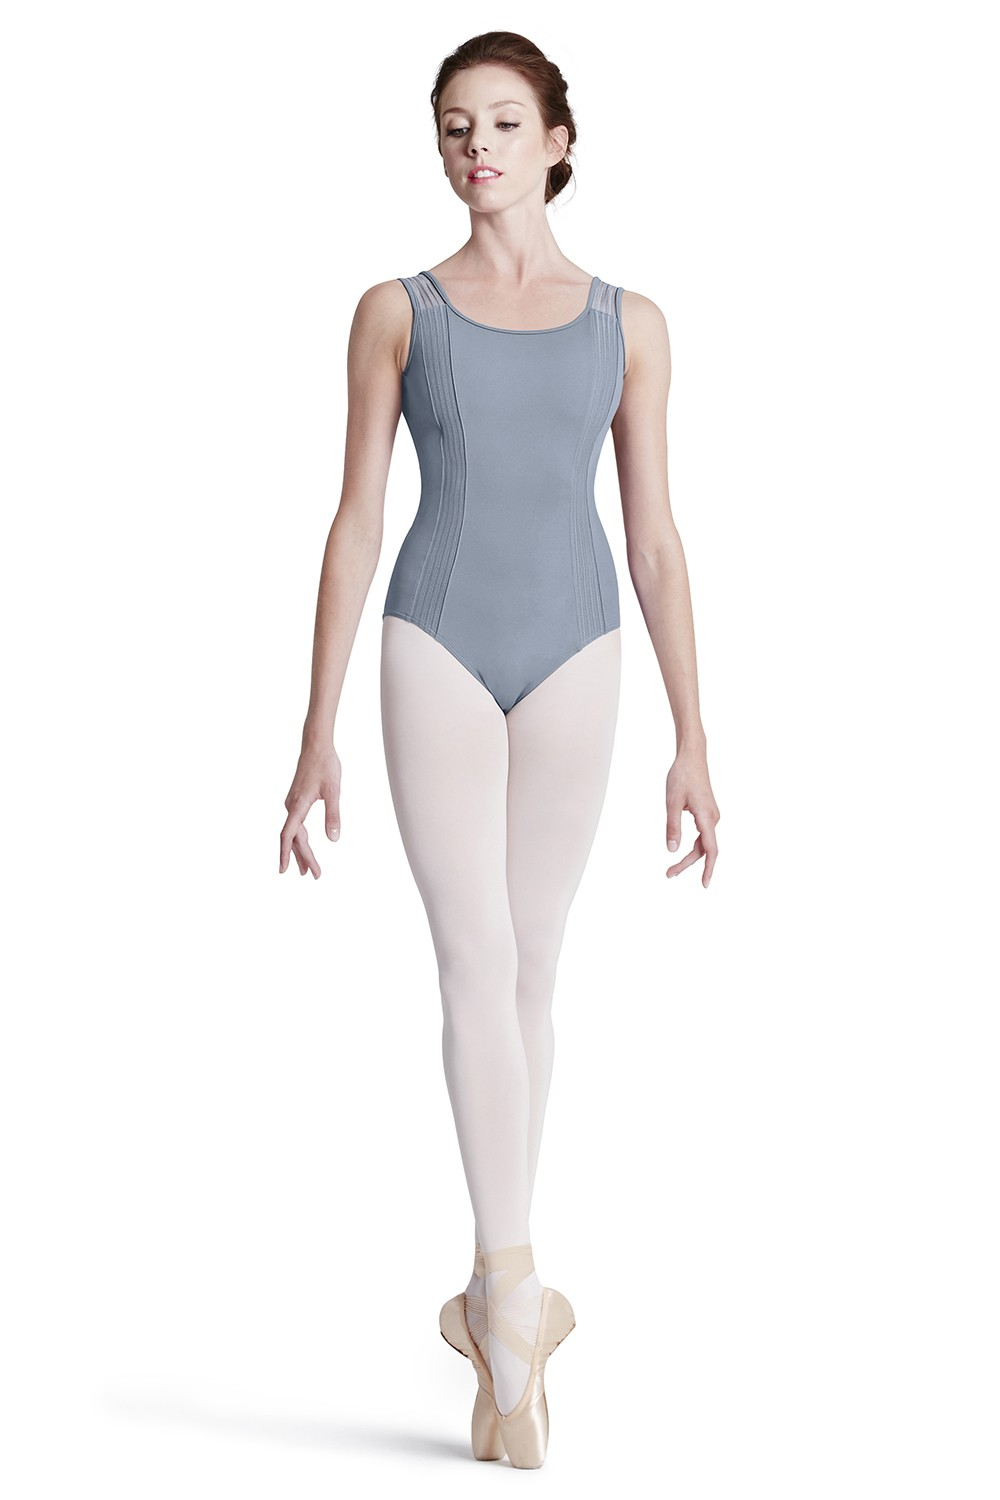 Lace Trim Side Leo Women's Dance Leotards